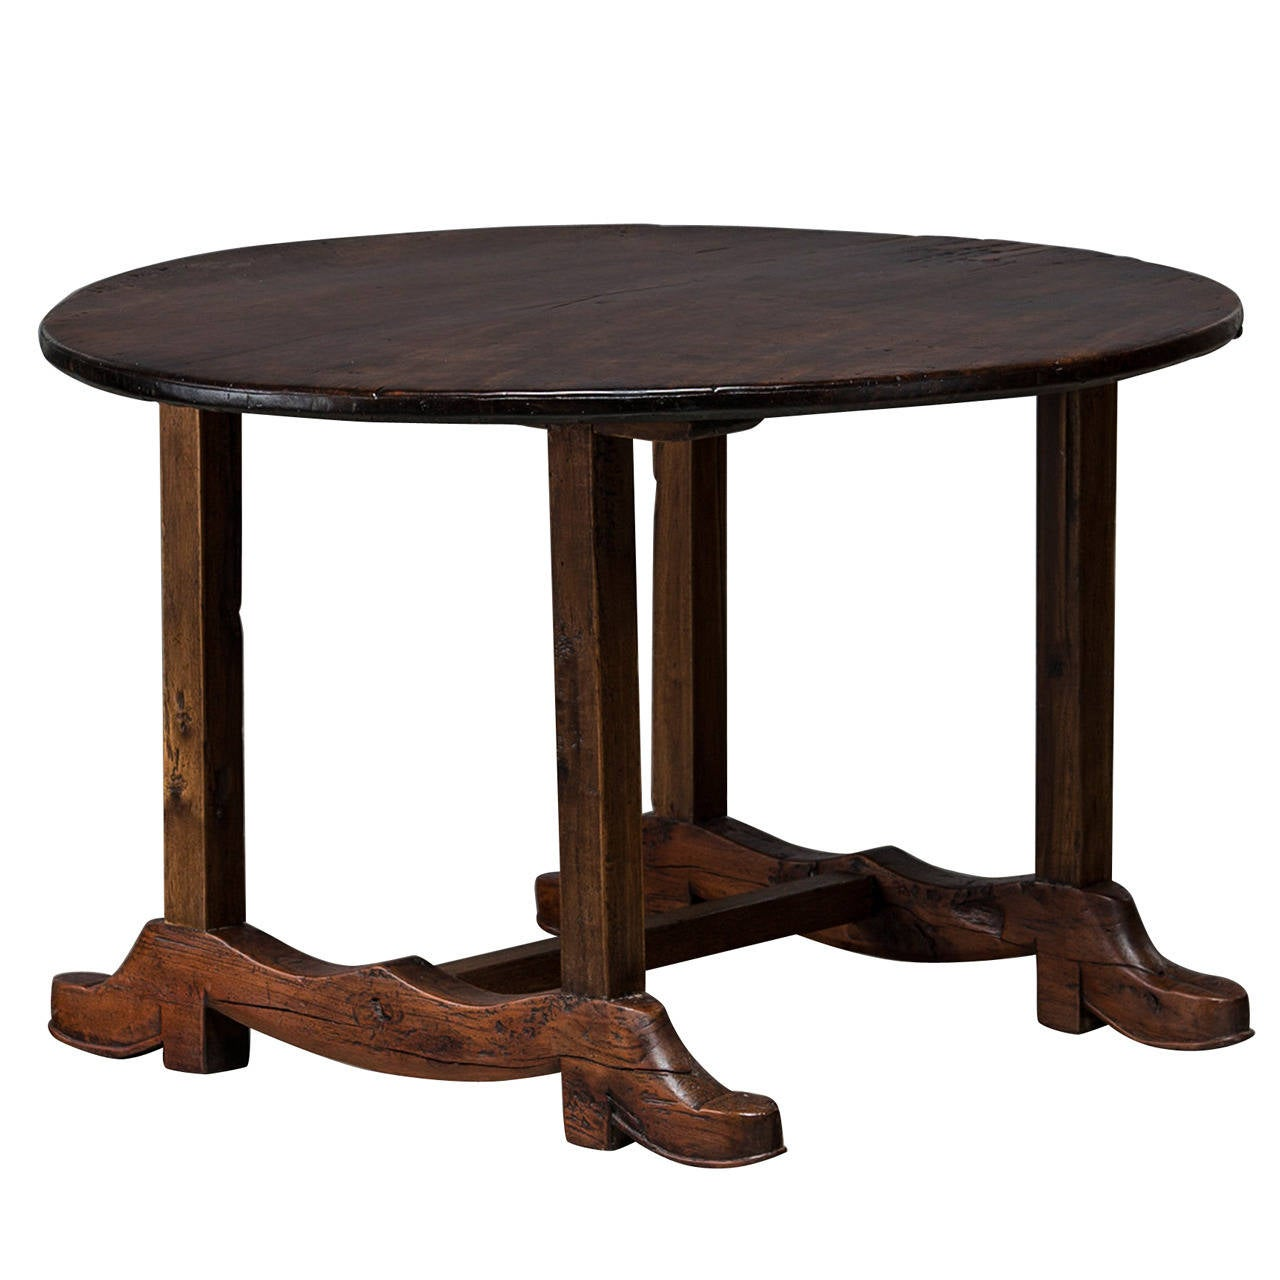 Round dining table made of Narra quothardwoodquot at 1stdibs : ORG101474l from 1stdibs.com size 1280 x 1280 jpeg 94kB